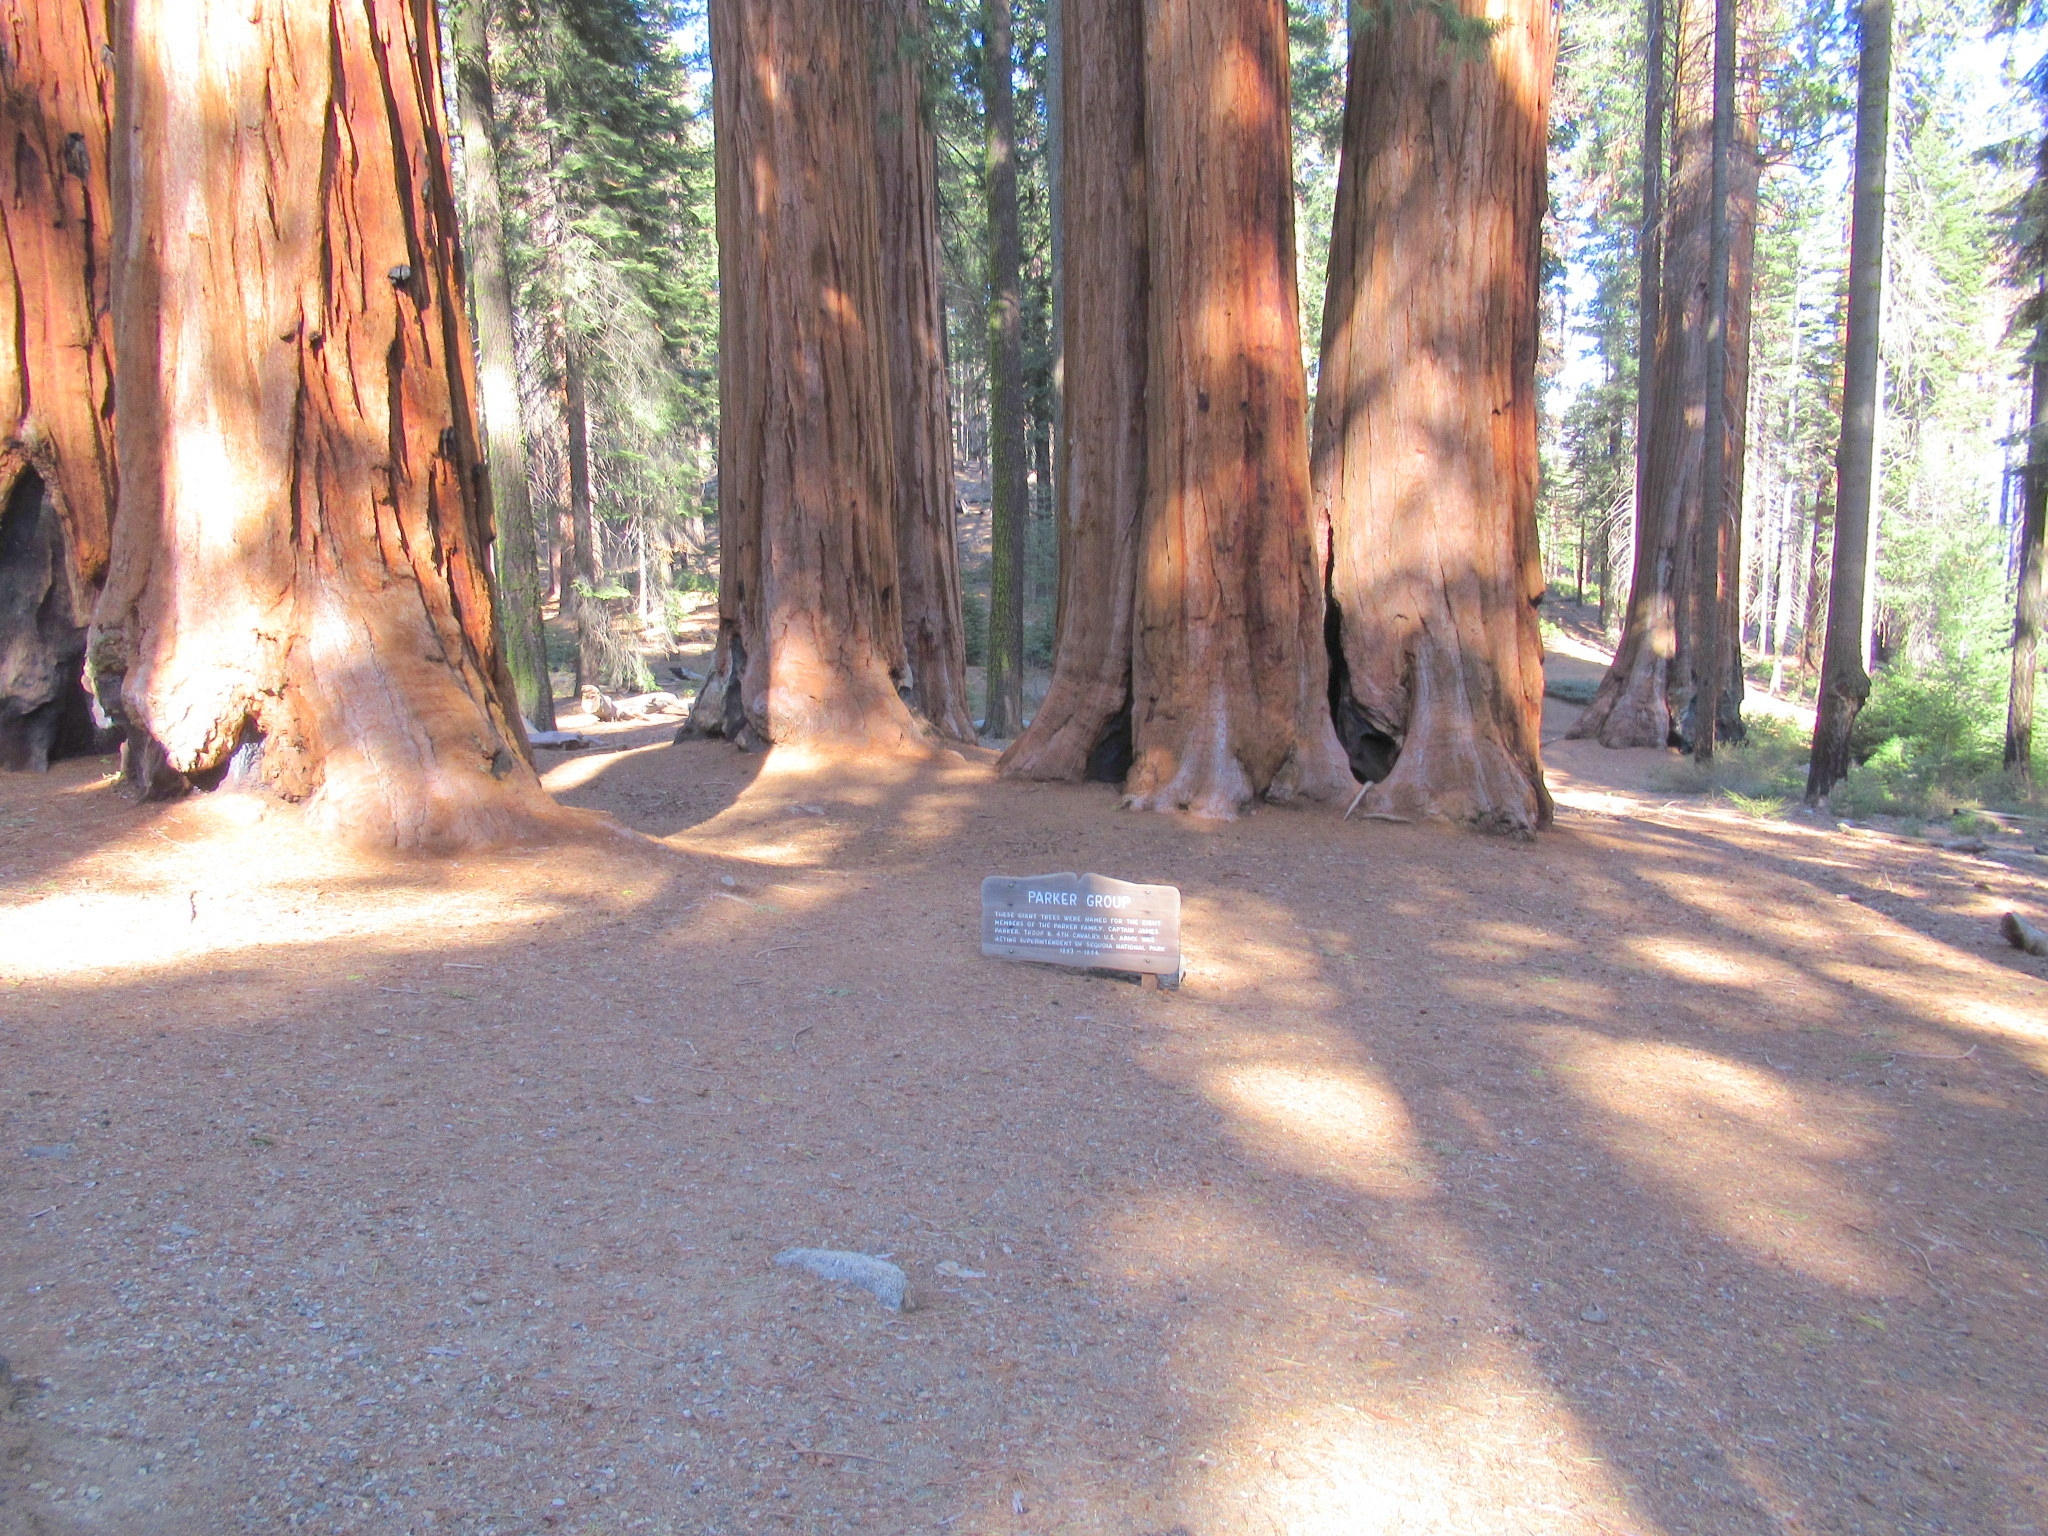 The Parker group of Sequoias